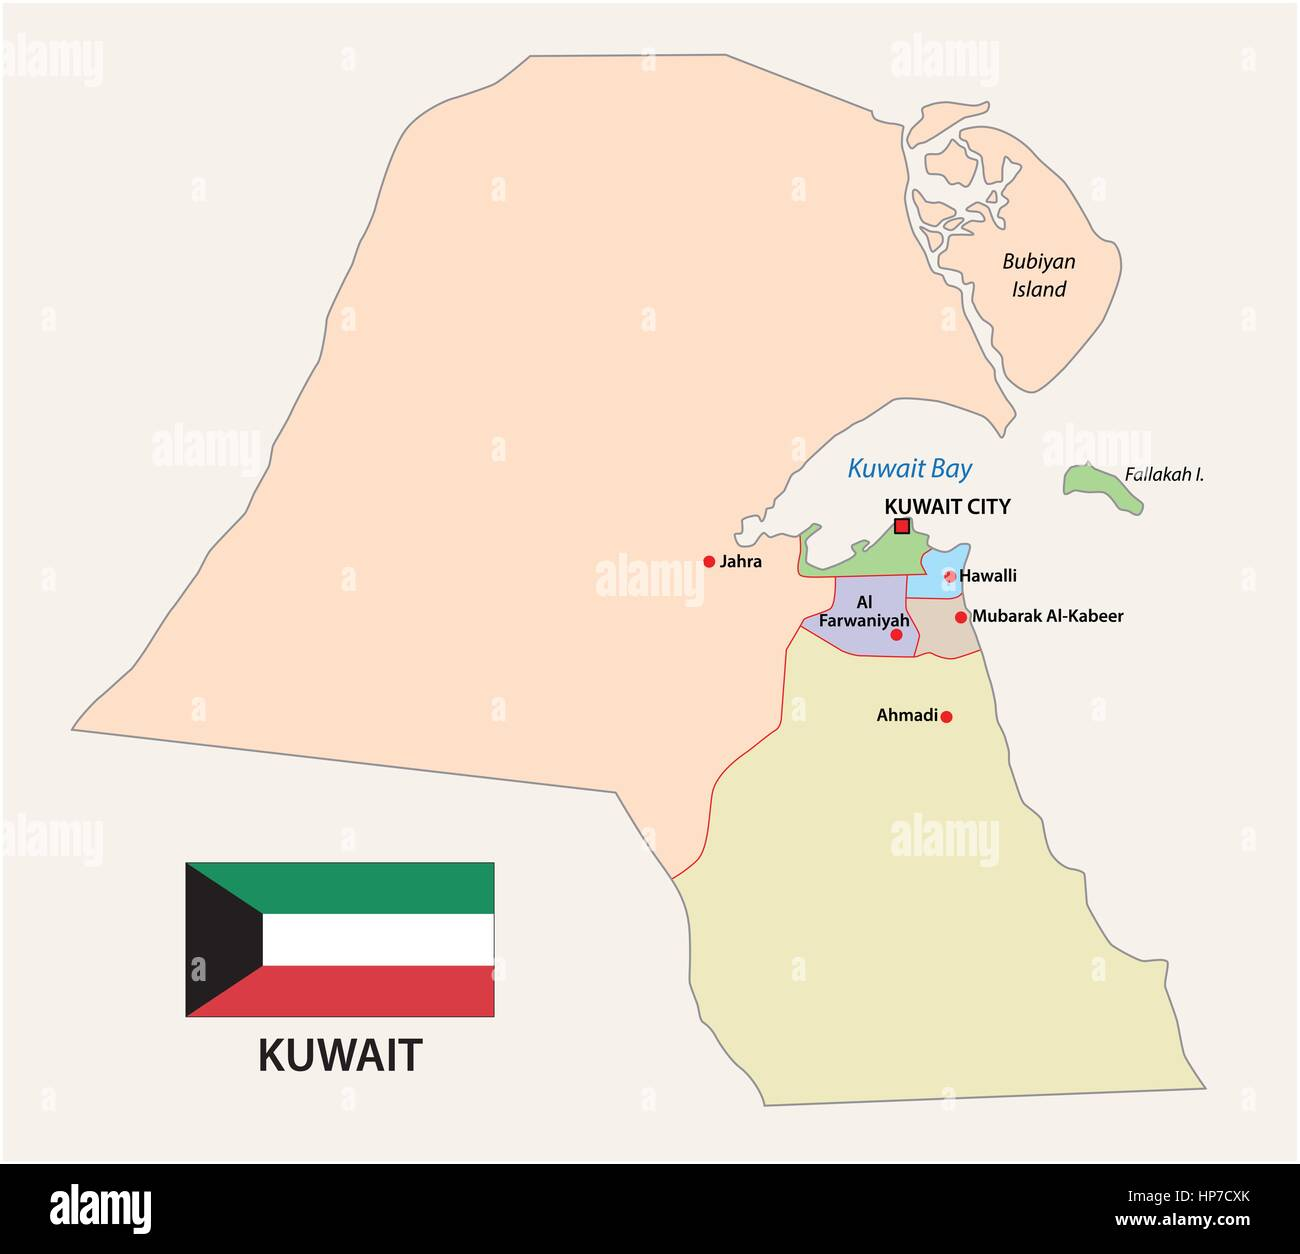 Kuwait Political Map.Kuwait Administrative And Political Map With Flag Stock Vector Art